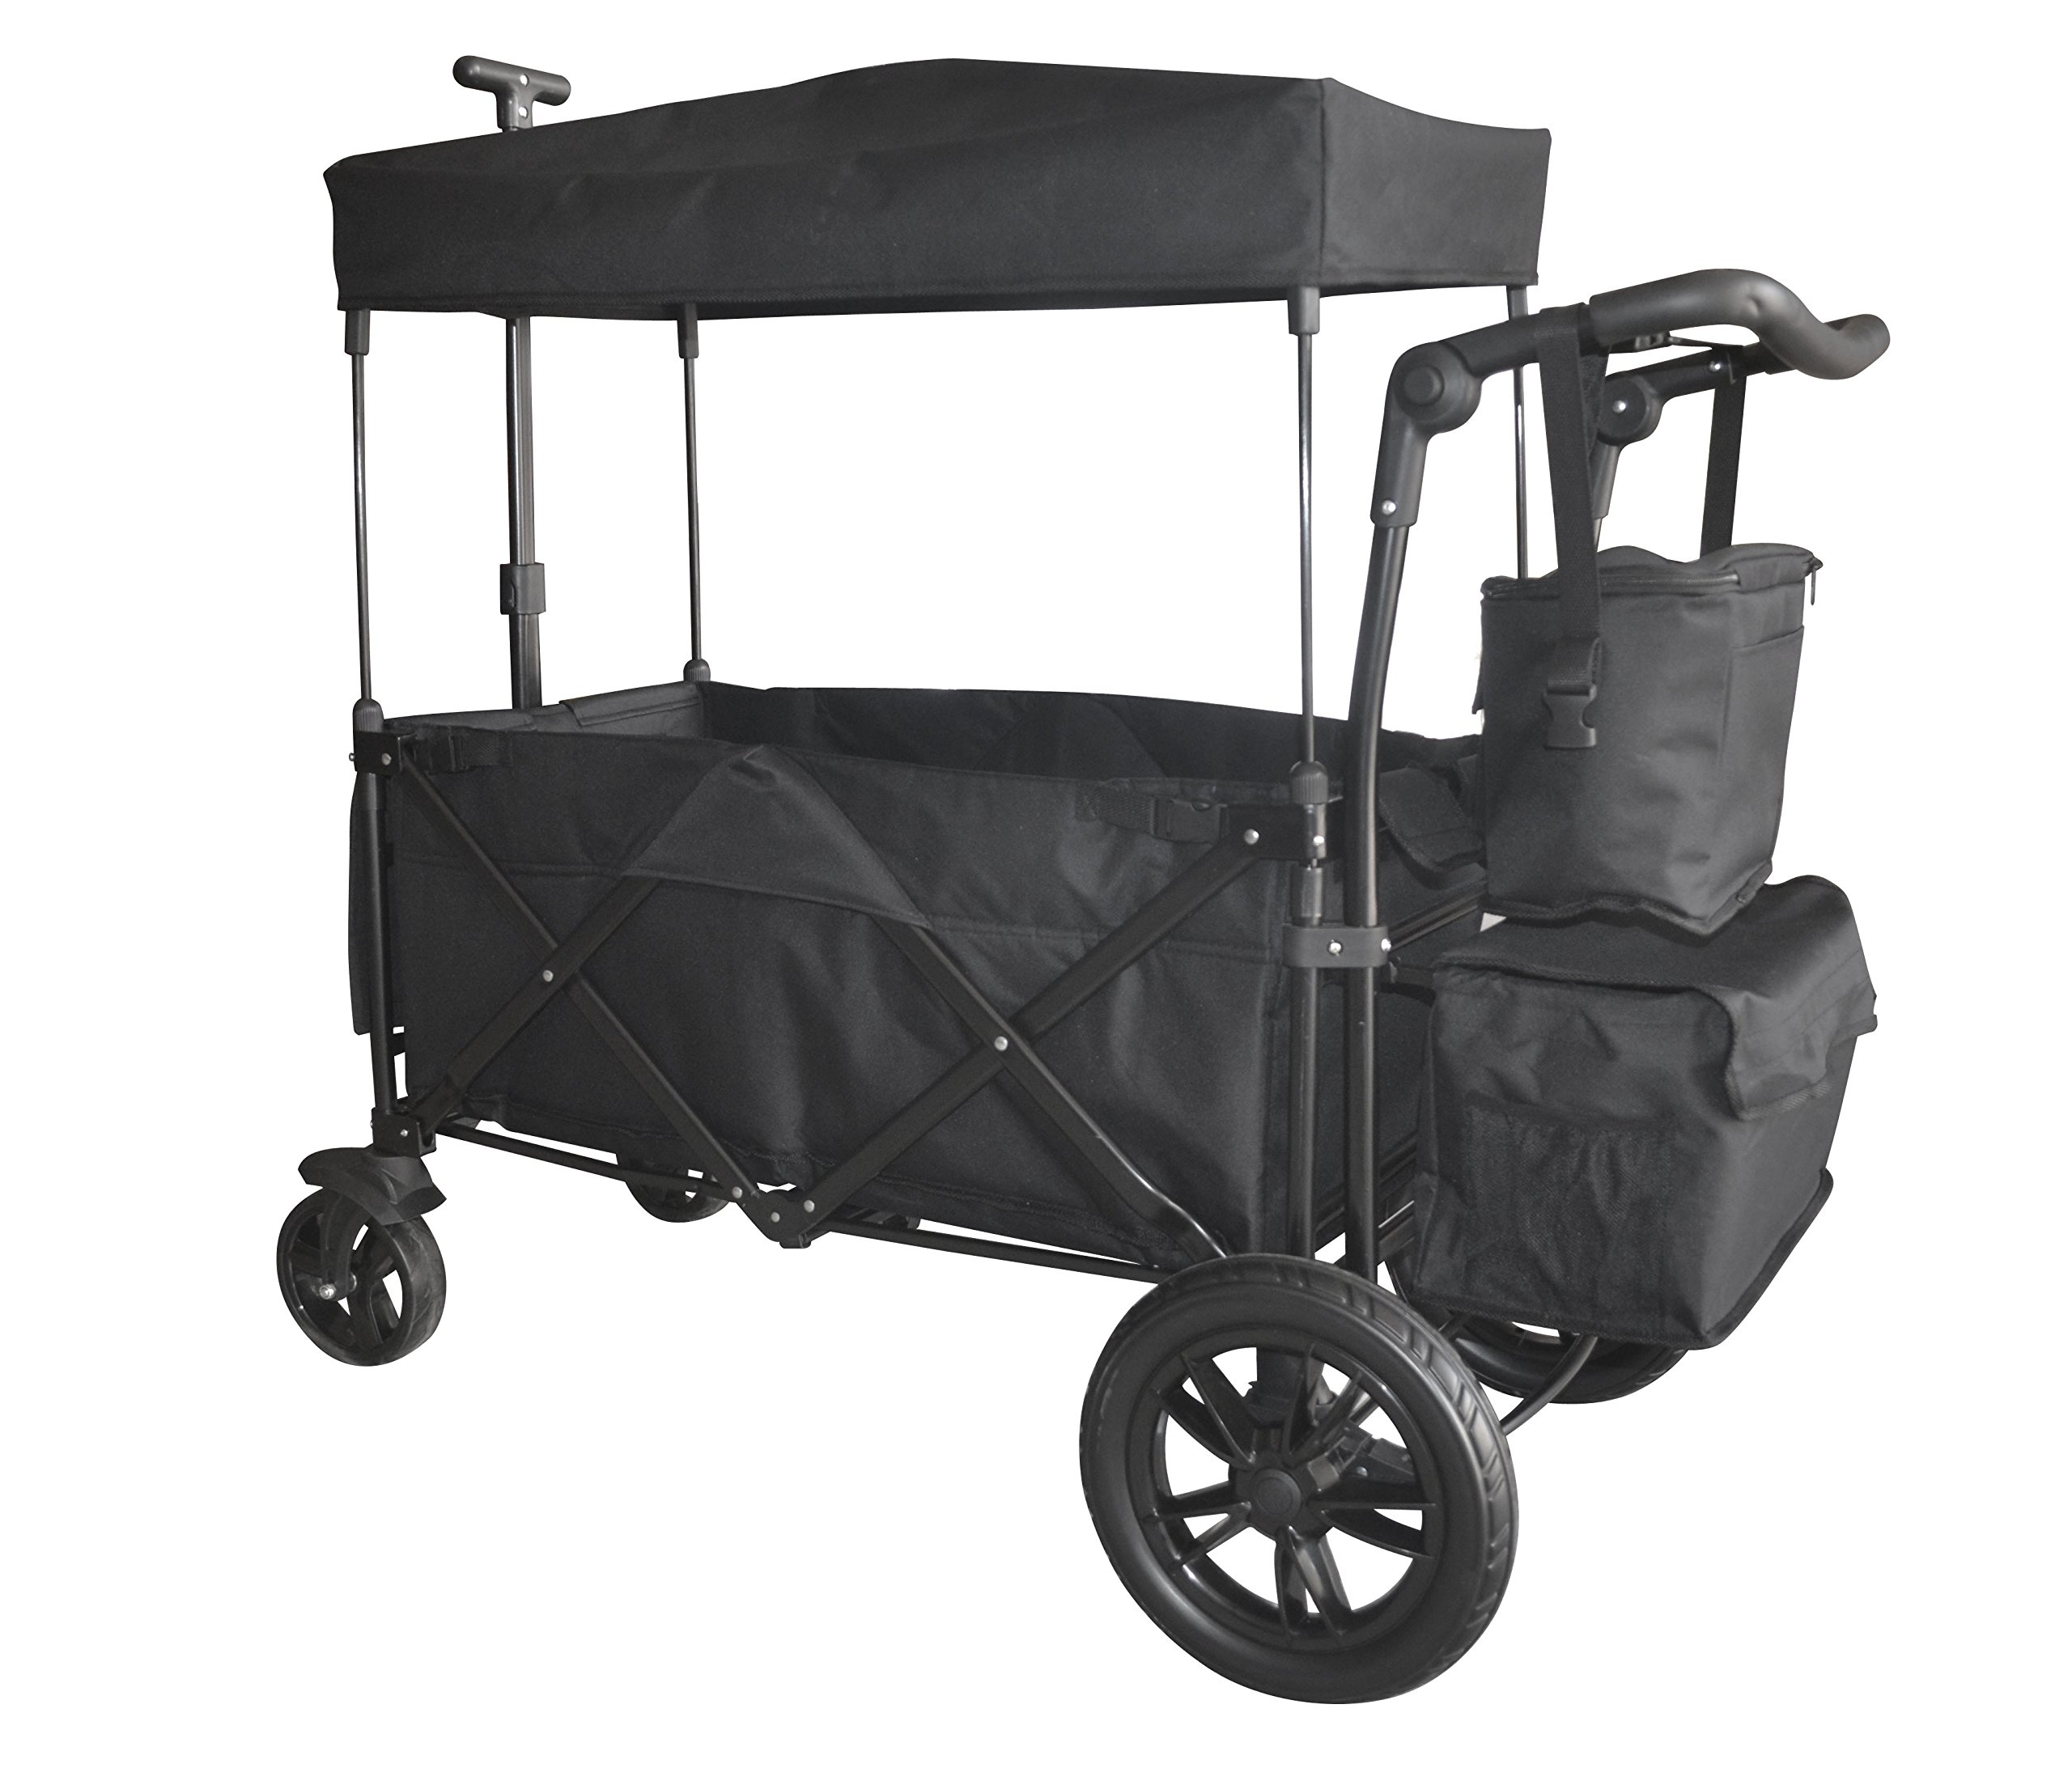 Black Push and Pull Handle/Foot Brake Folding Wagon Baby Stroller Utility CARTFREE Carrying Bag by Wagon Buddy